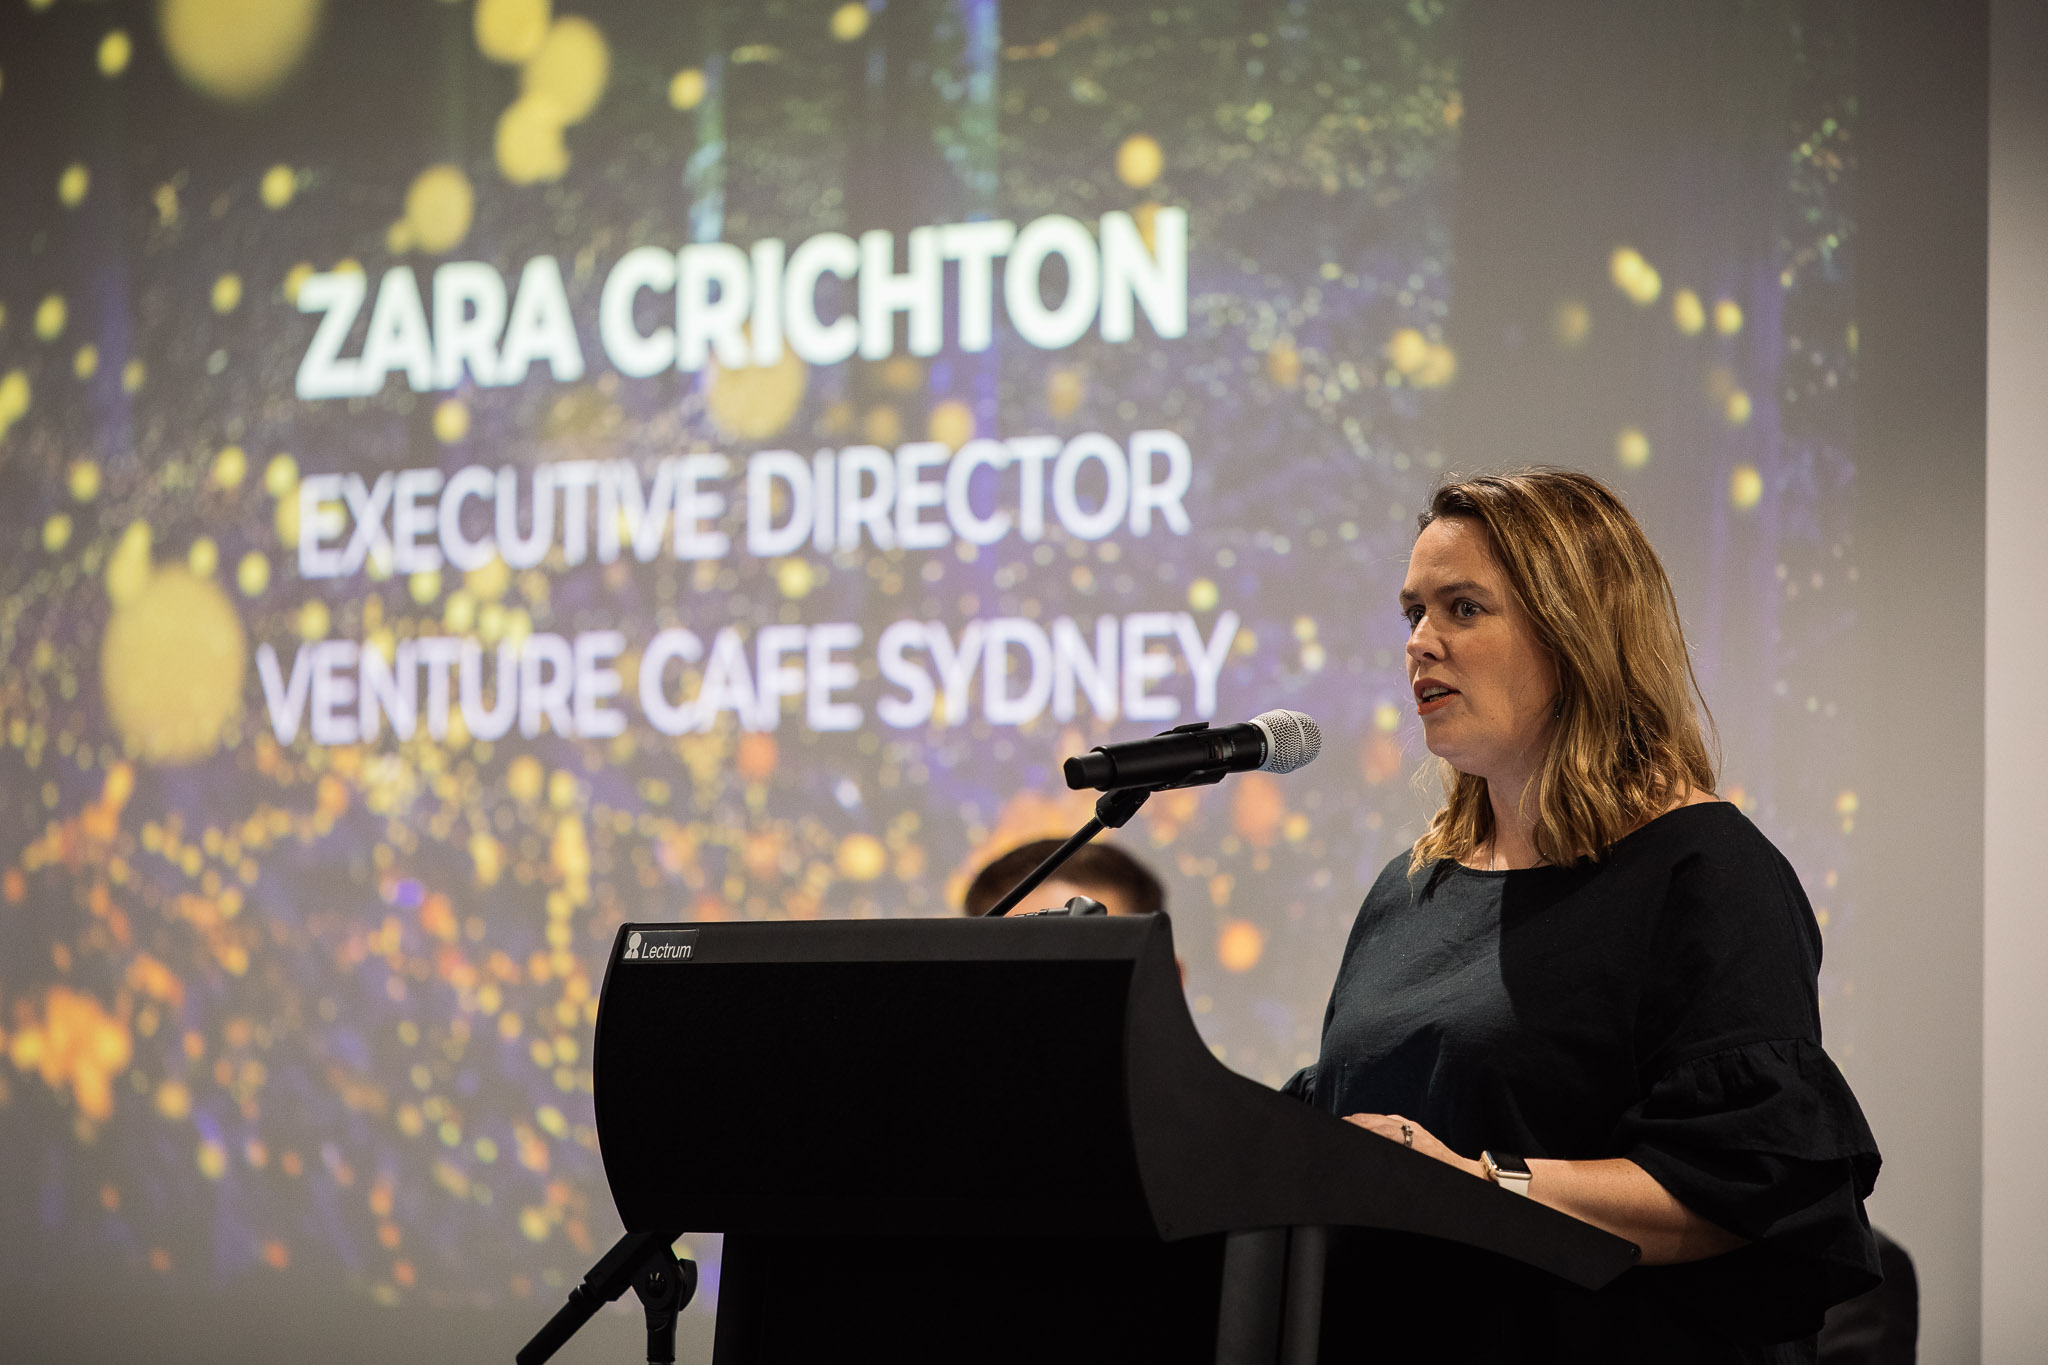 Zara Crichton - Venture Café Sydney Executive Director